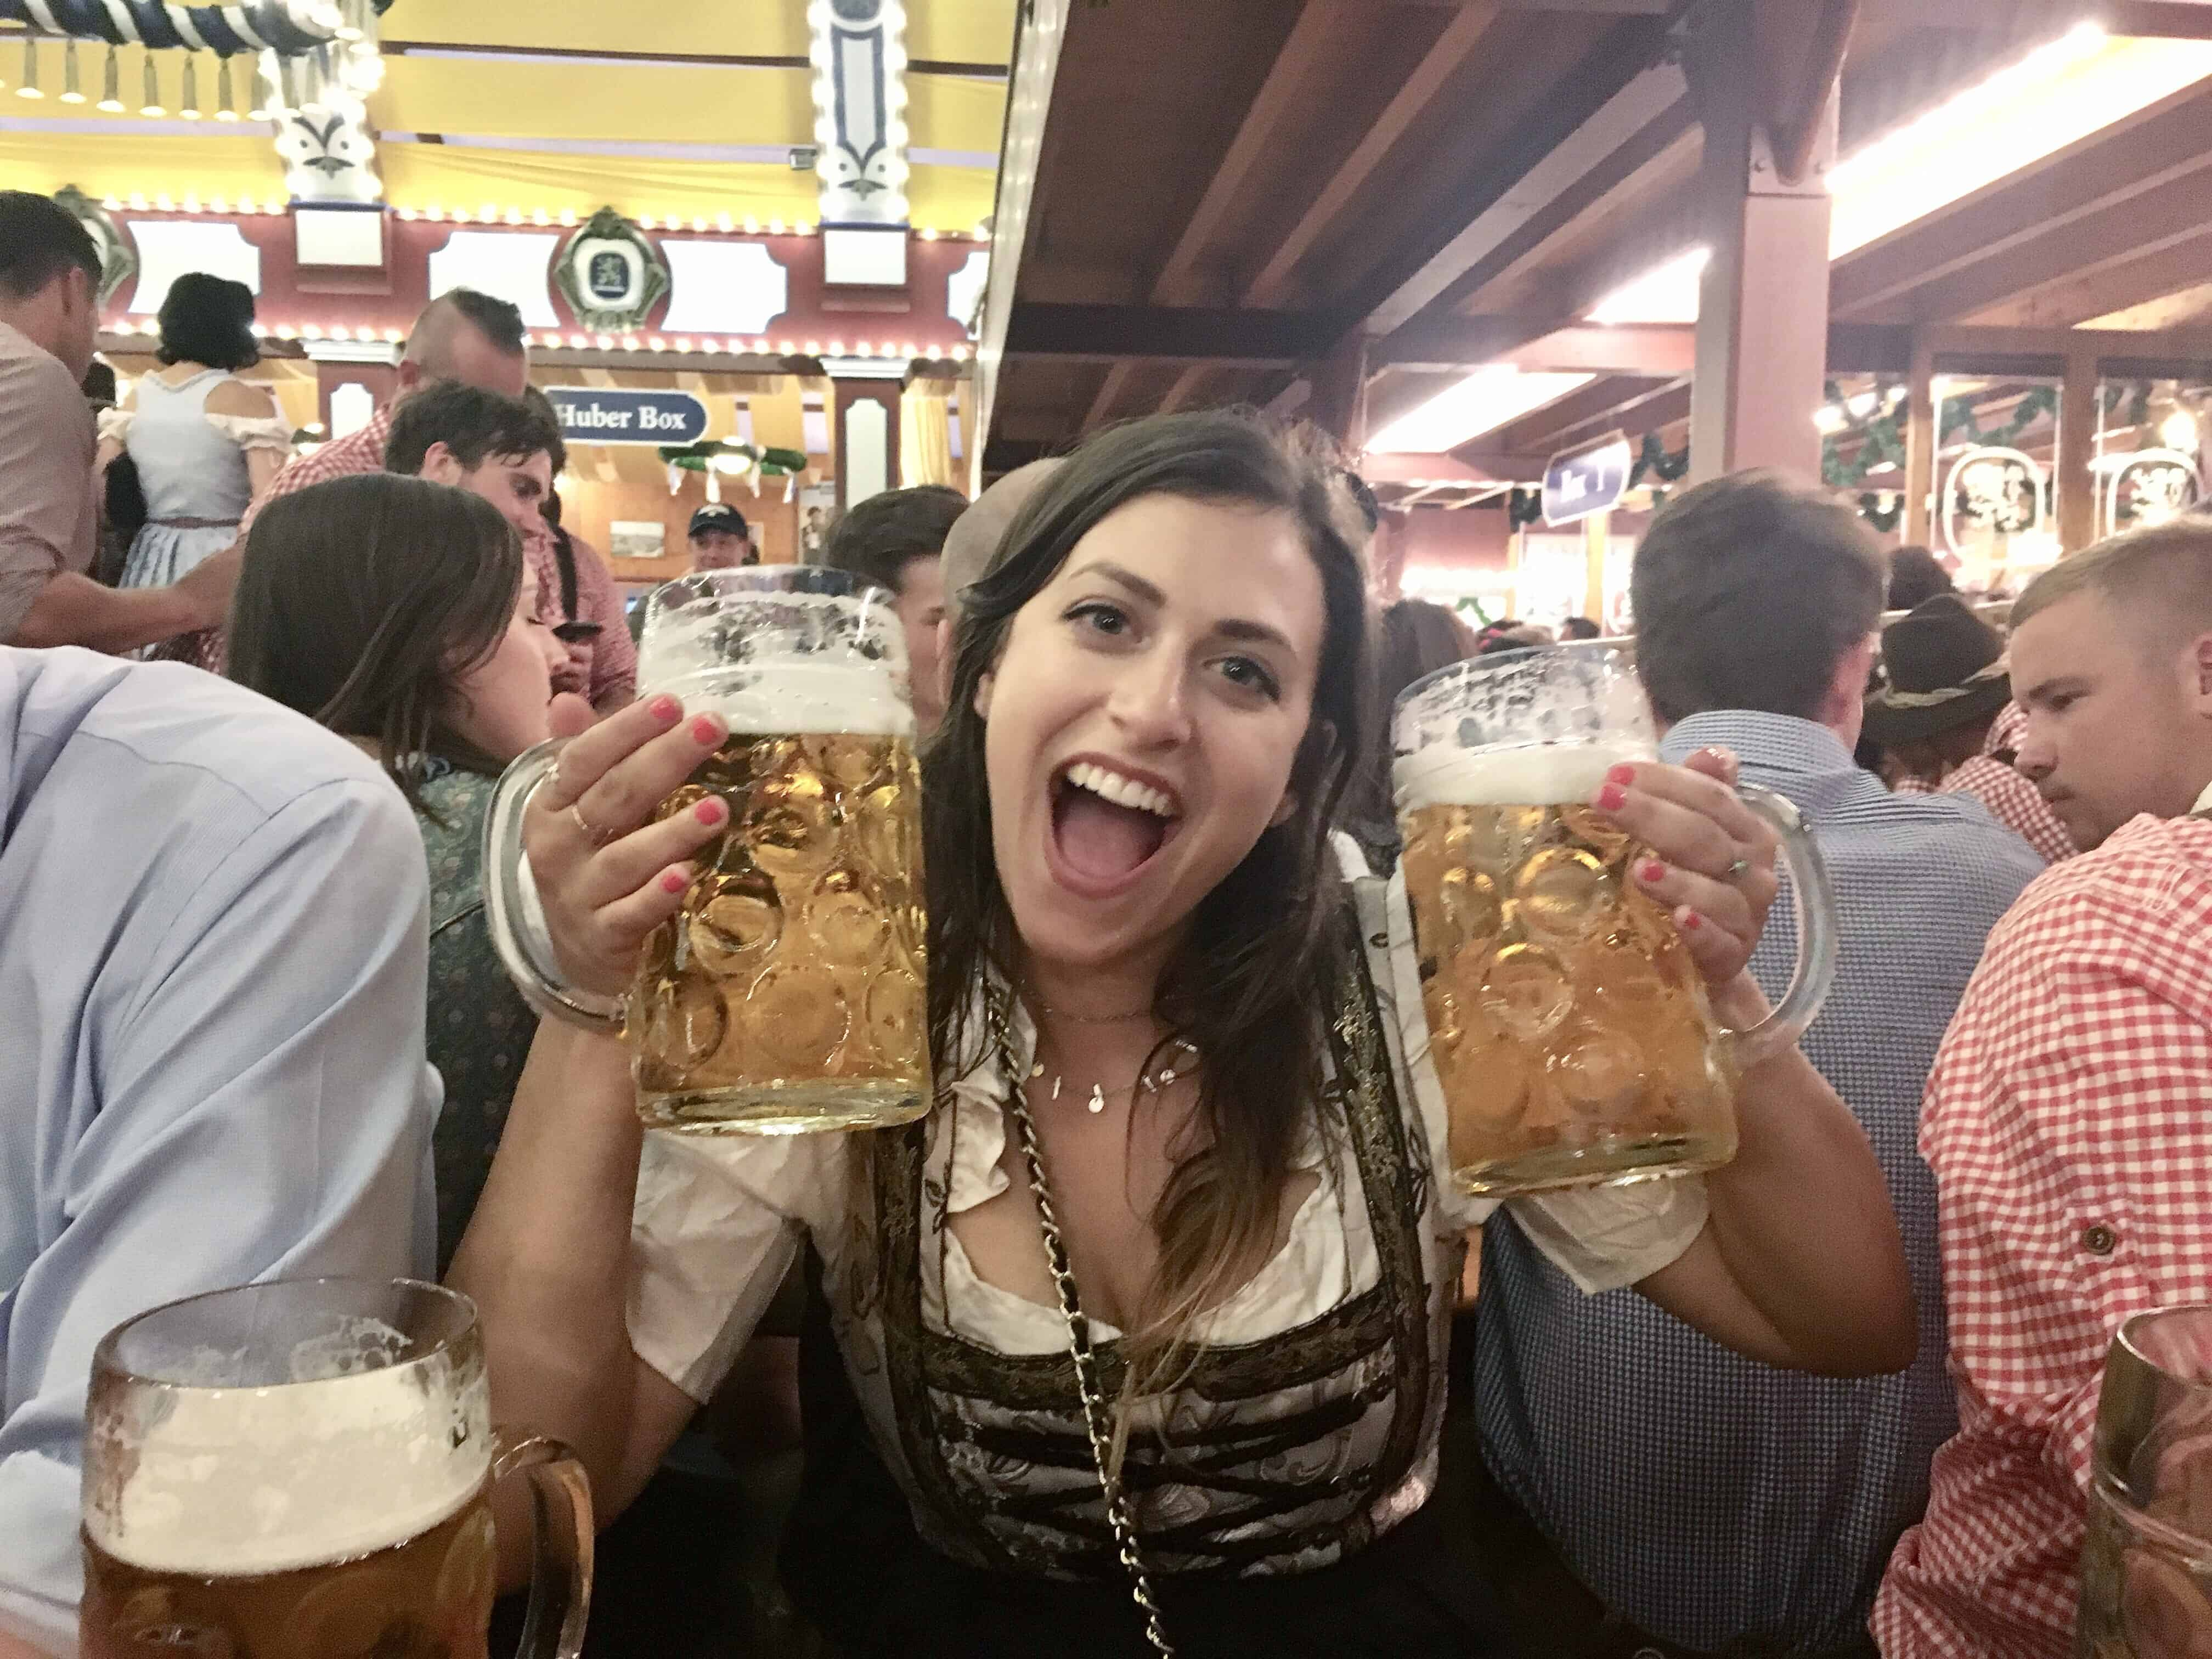 Holding two steins, or Maß, at Oktoberfest in Munich, Germany in the Löwenbräu tent